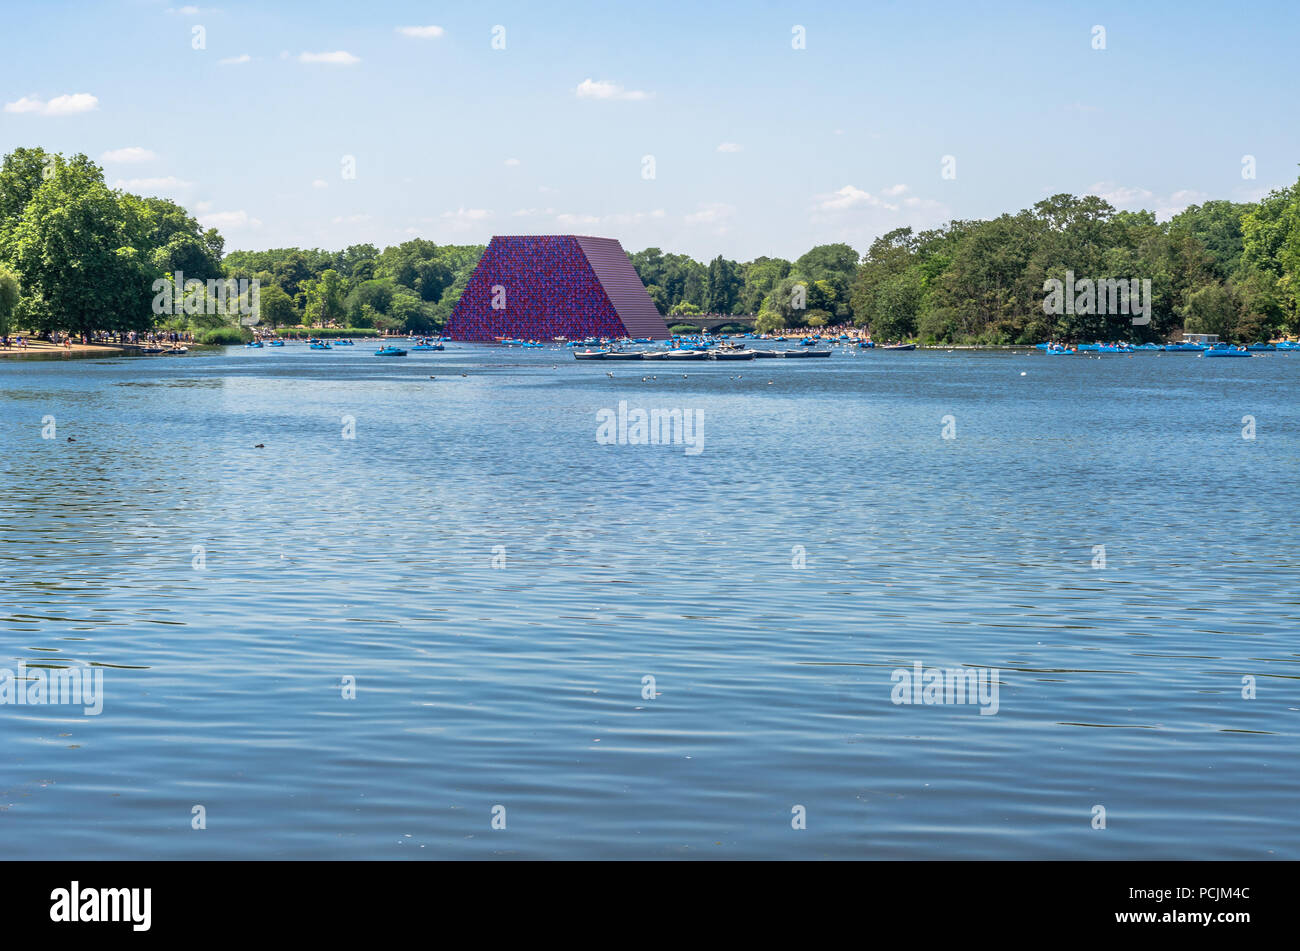 The Serpentine Lake at Hyde Park with the London Mastaba in the background in summer 2018 - Stock Image